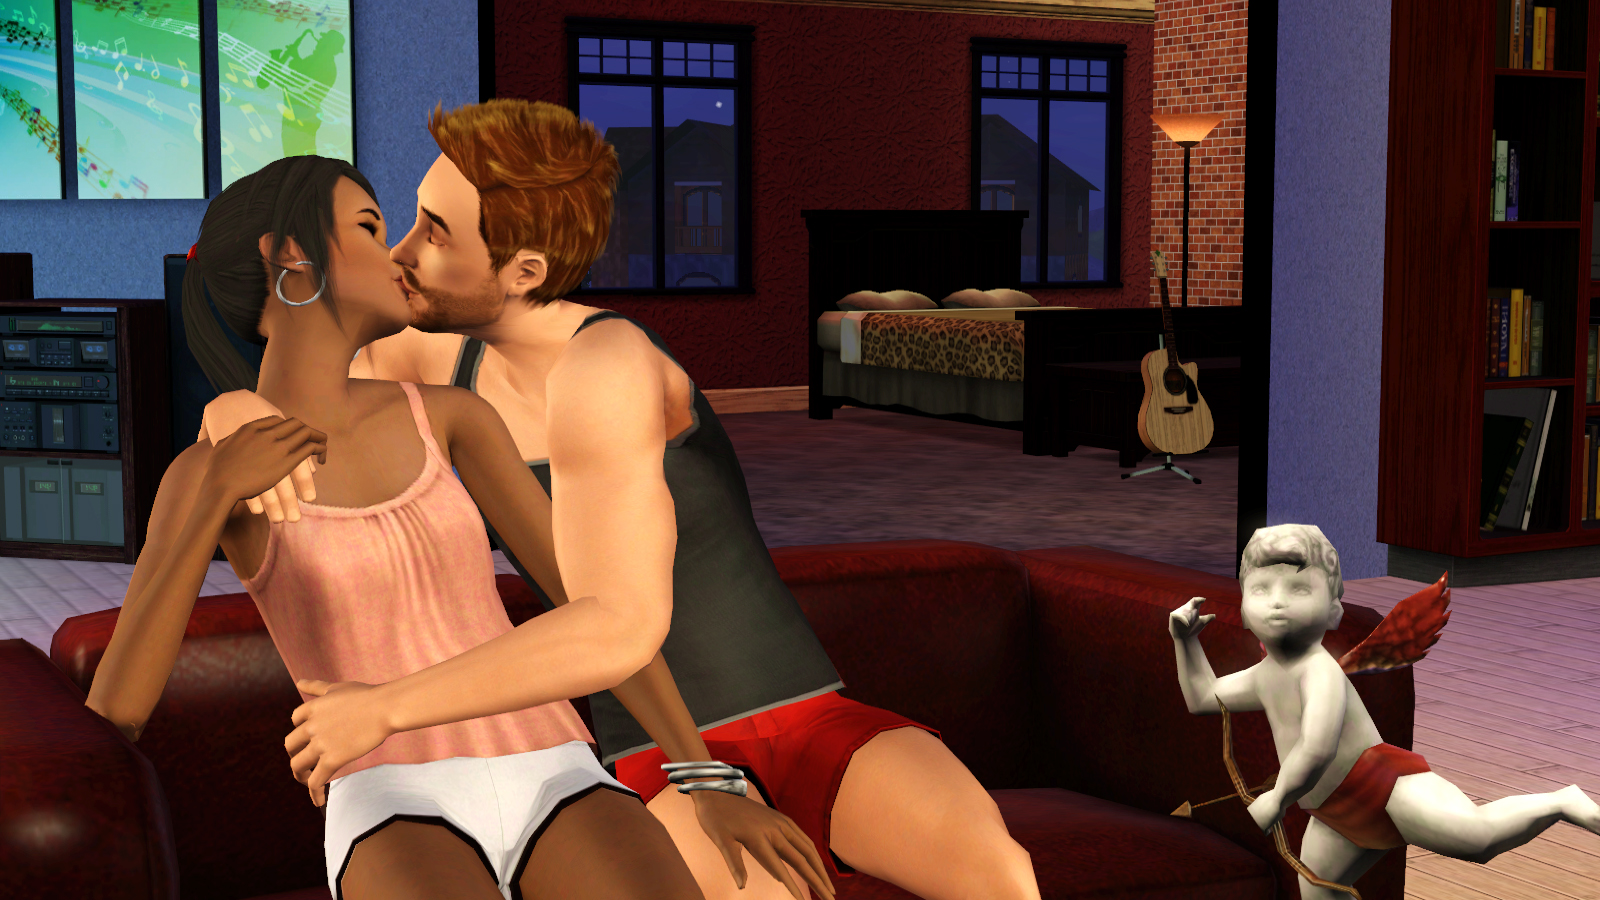 Porno sims game softcore videos